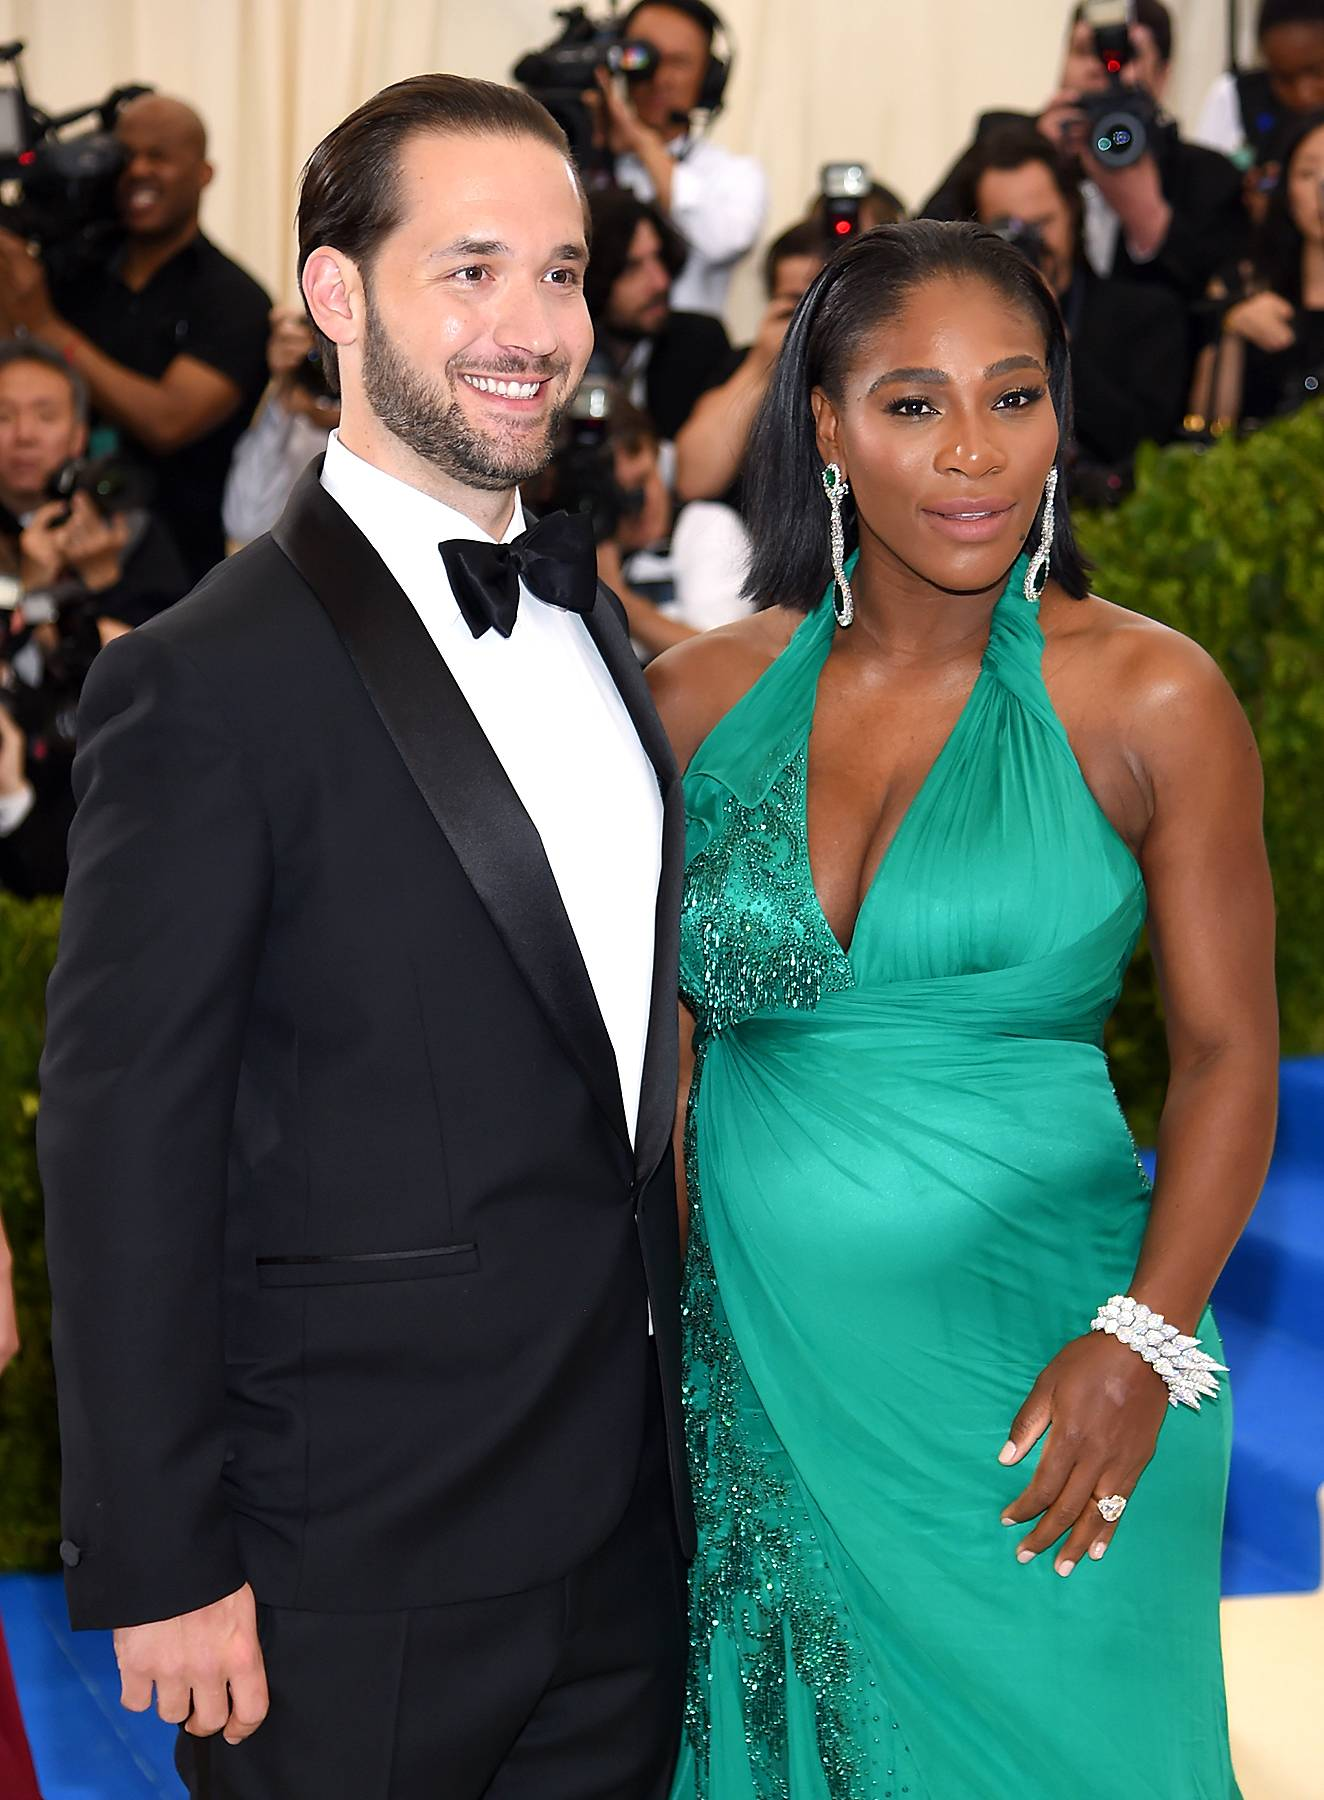 """Alexis Ohanian (L) and Serena Williams attend the """"Rei Kawakubo/Comme des Garcons: Art Of The In-Between"""" Costume Institute Gala at Metropolitan Museum of Art on May 1, 2017 in New York City. (Photo: Dimitrios Kambouris/Getty Images)"""